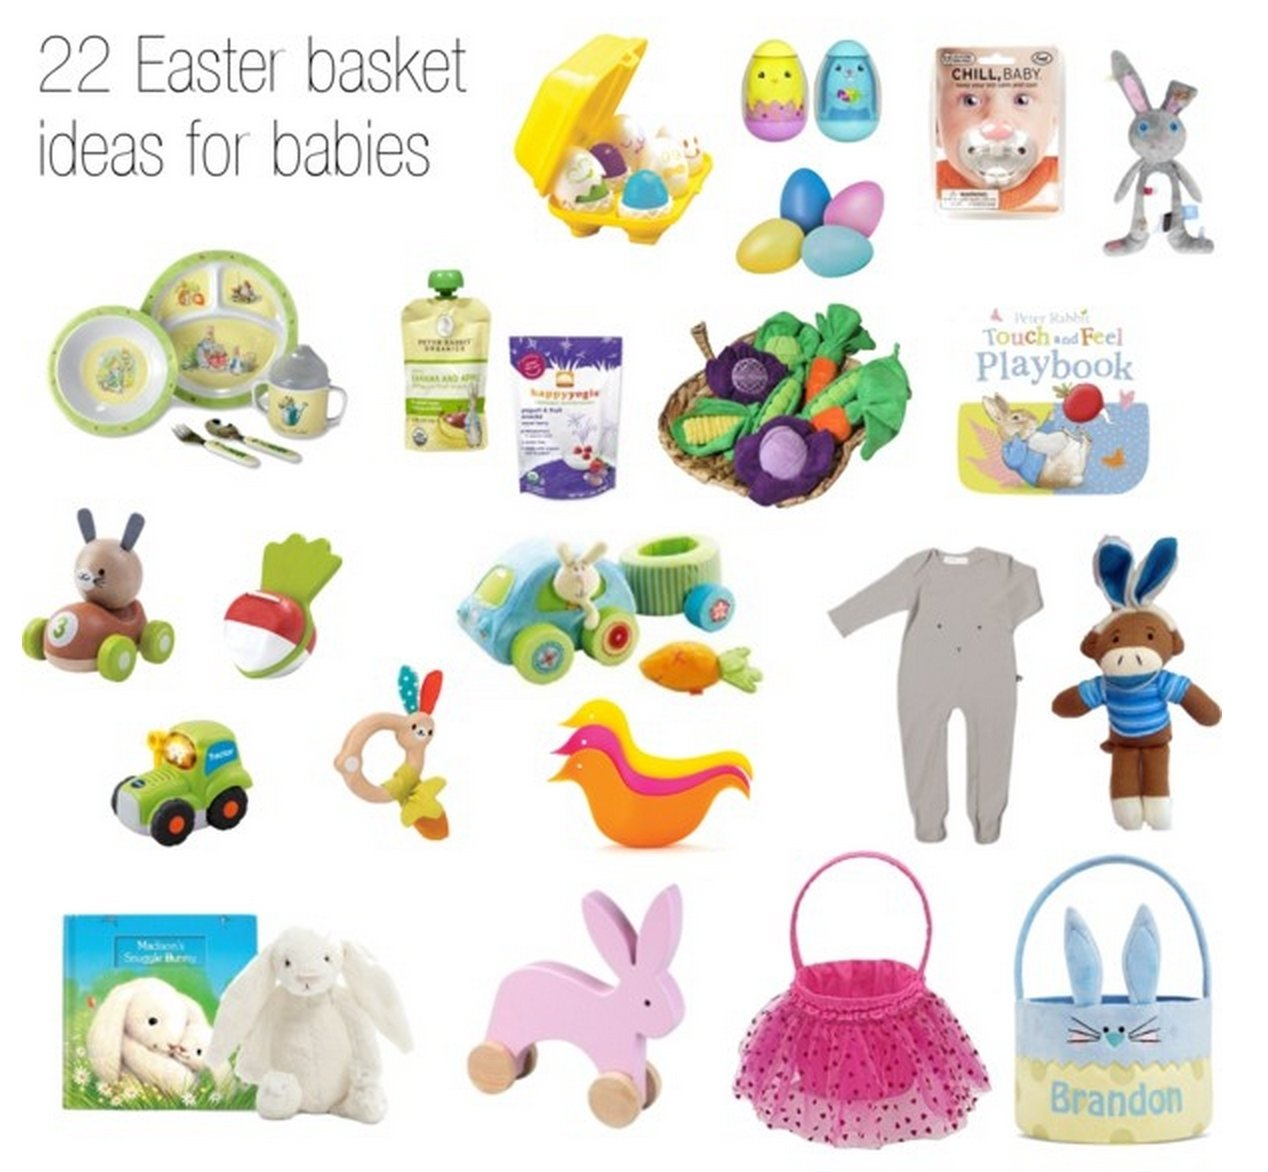 10 Stylish Baby First Easter Basket Ideas 22 adorable easter basket ideas for babies 1